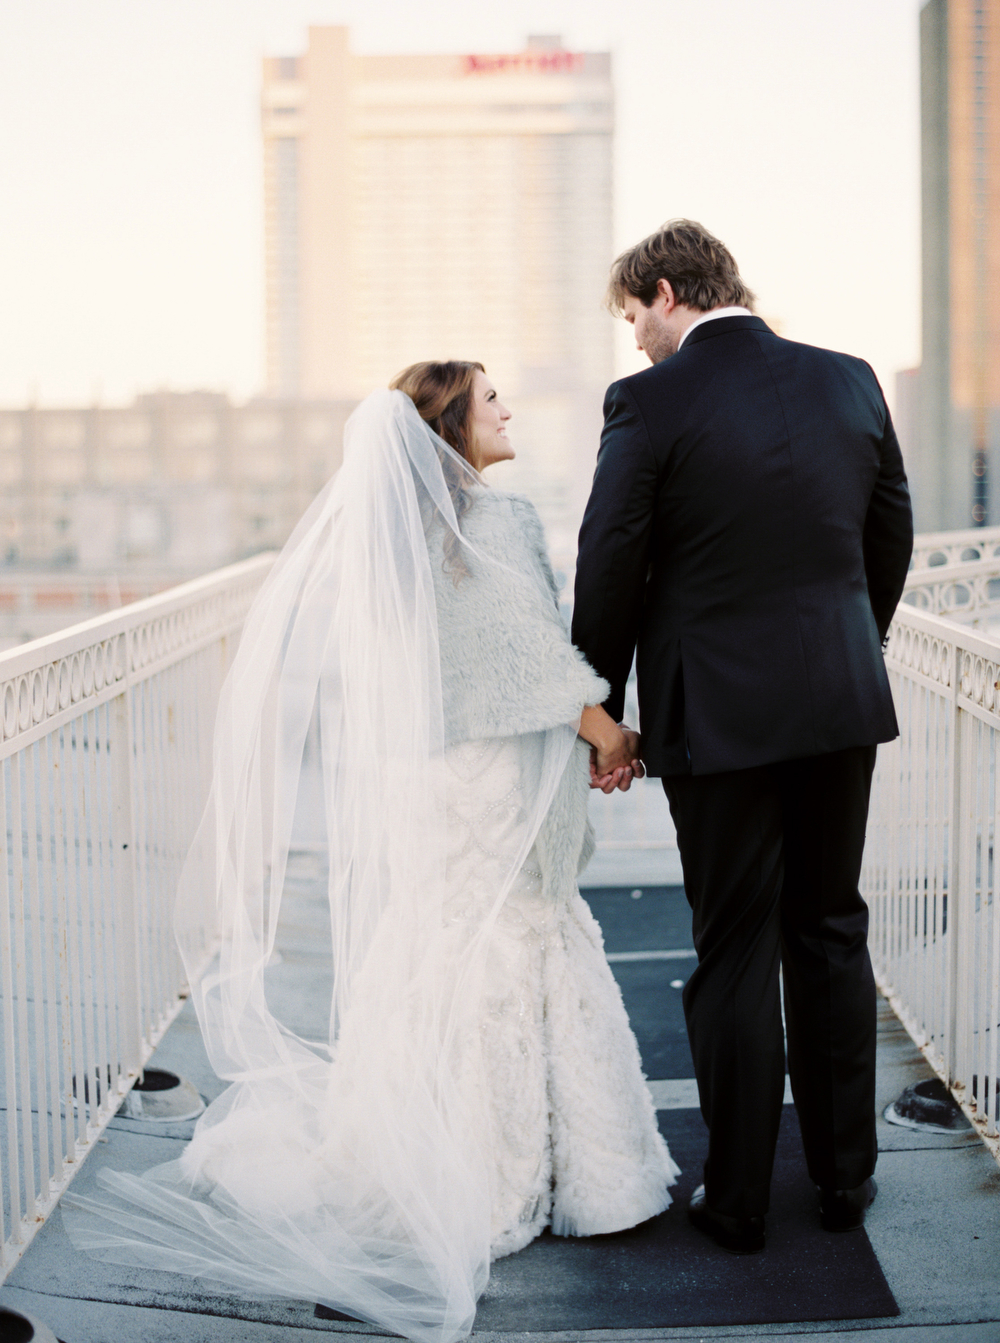 bride and groom walking away from the camera hand in hand with city skyline backdrop